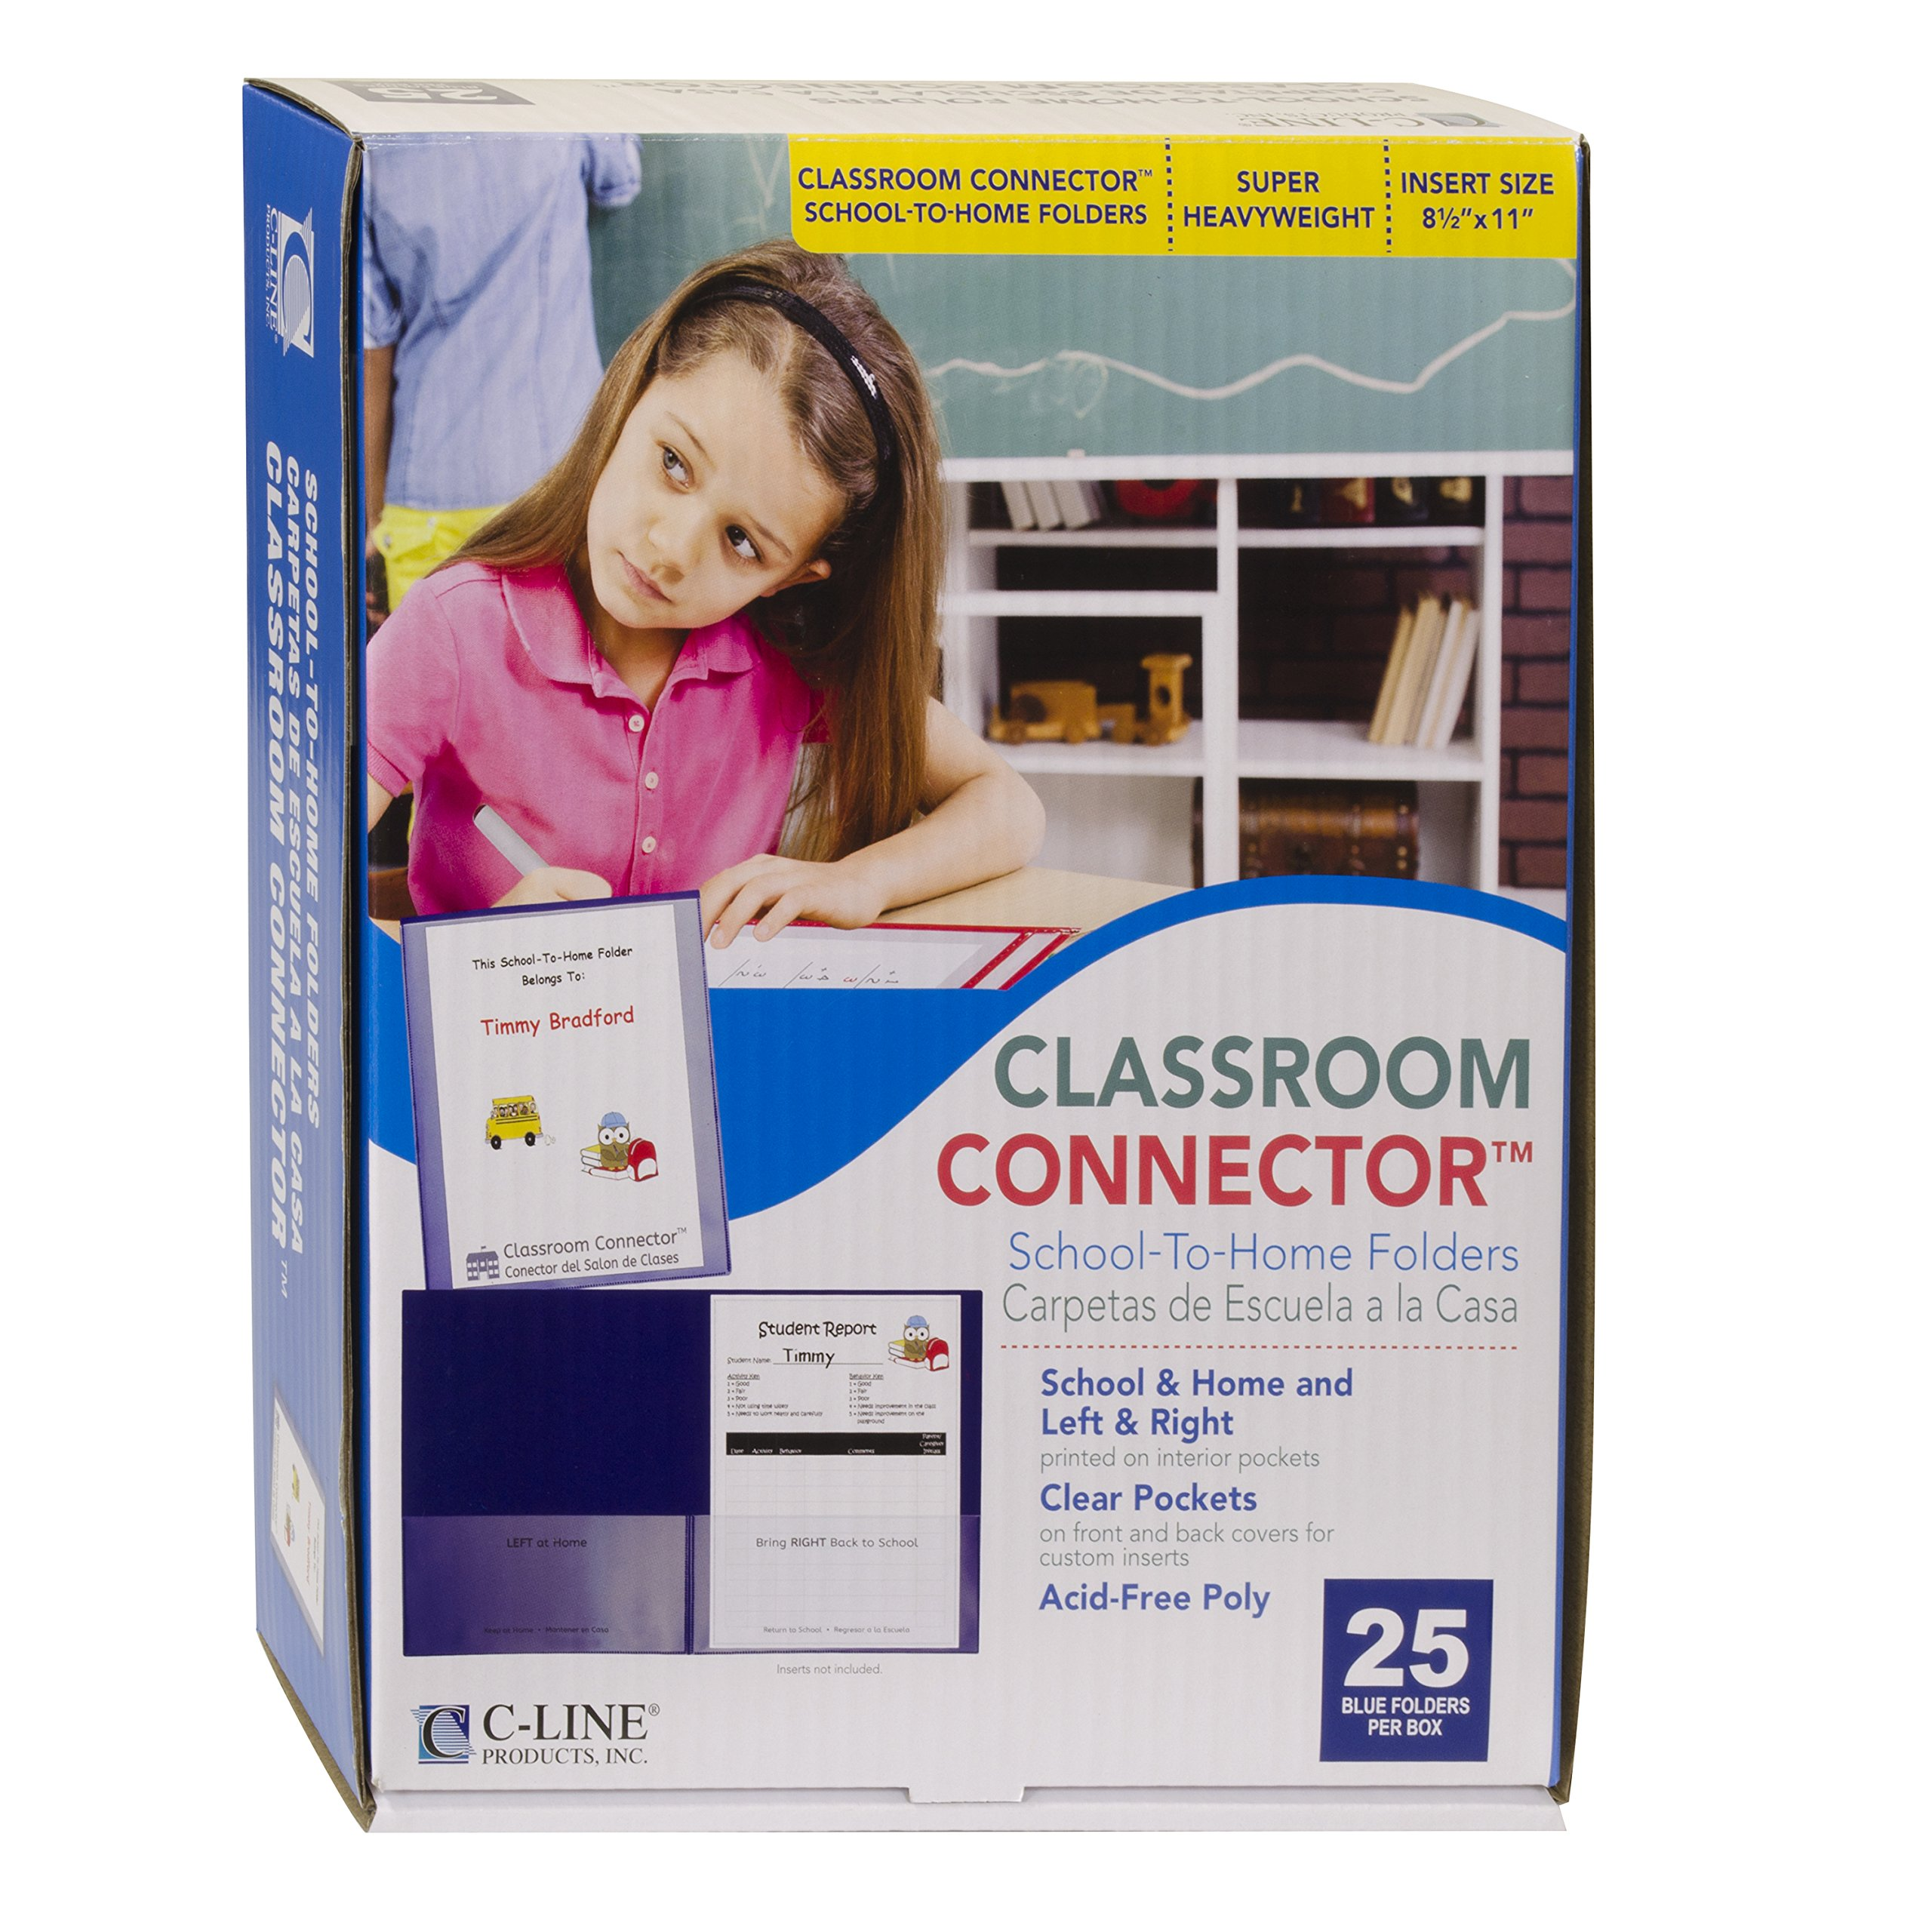 C-Line Classroom Connector School-to-Home Folders, Blue, 25 per Box (32005) by C-Line